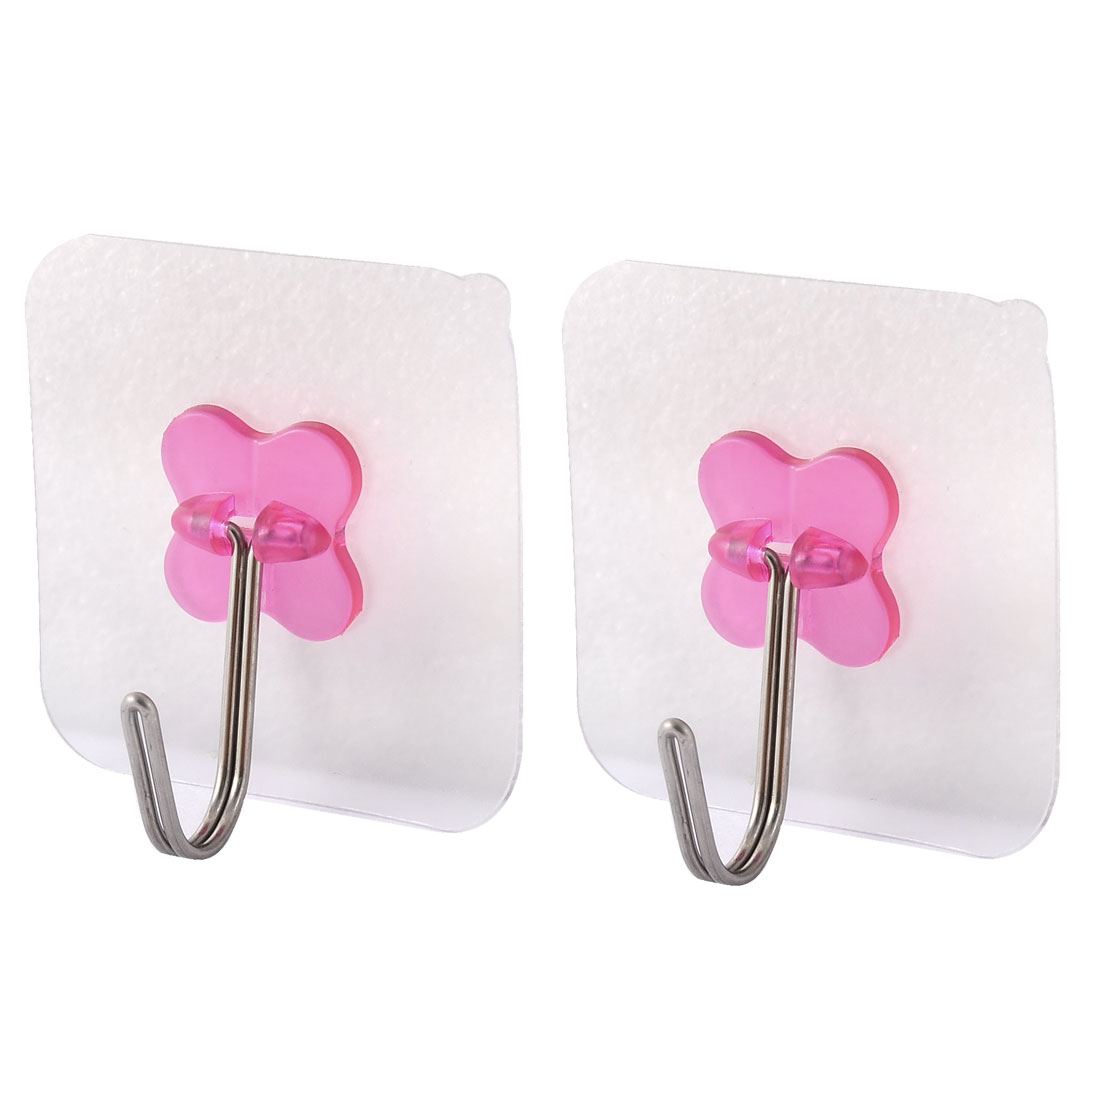 Home Wall No Scratch Towel Clothes Hanging Self Adhesive Seamless Hook Fuchsia 2pcs